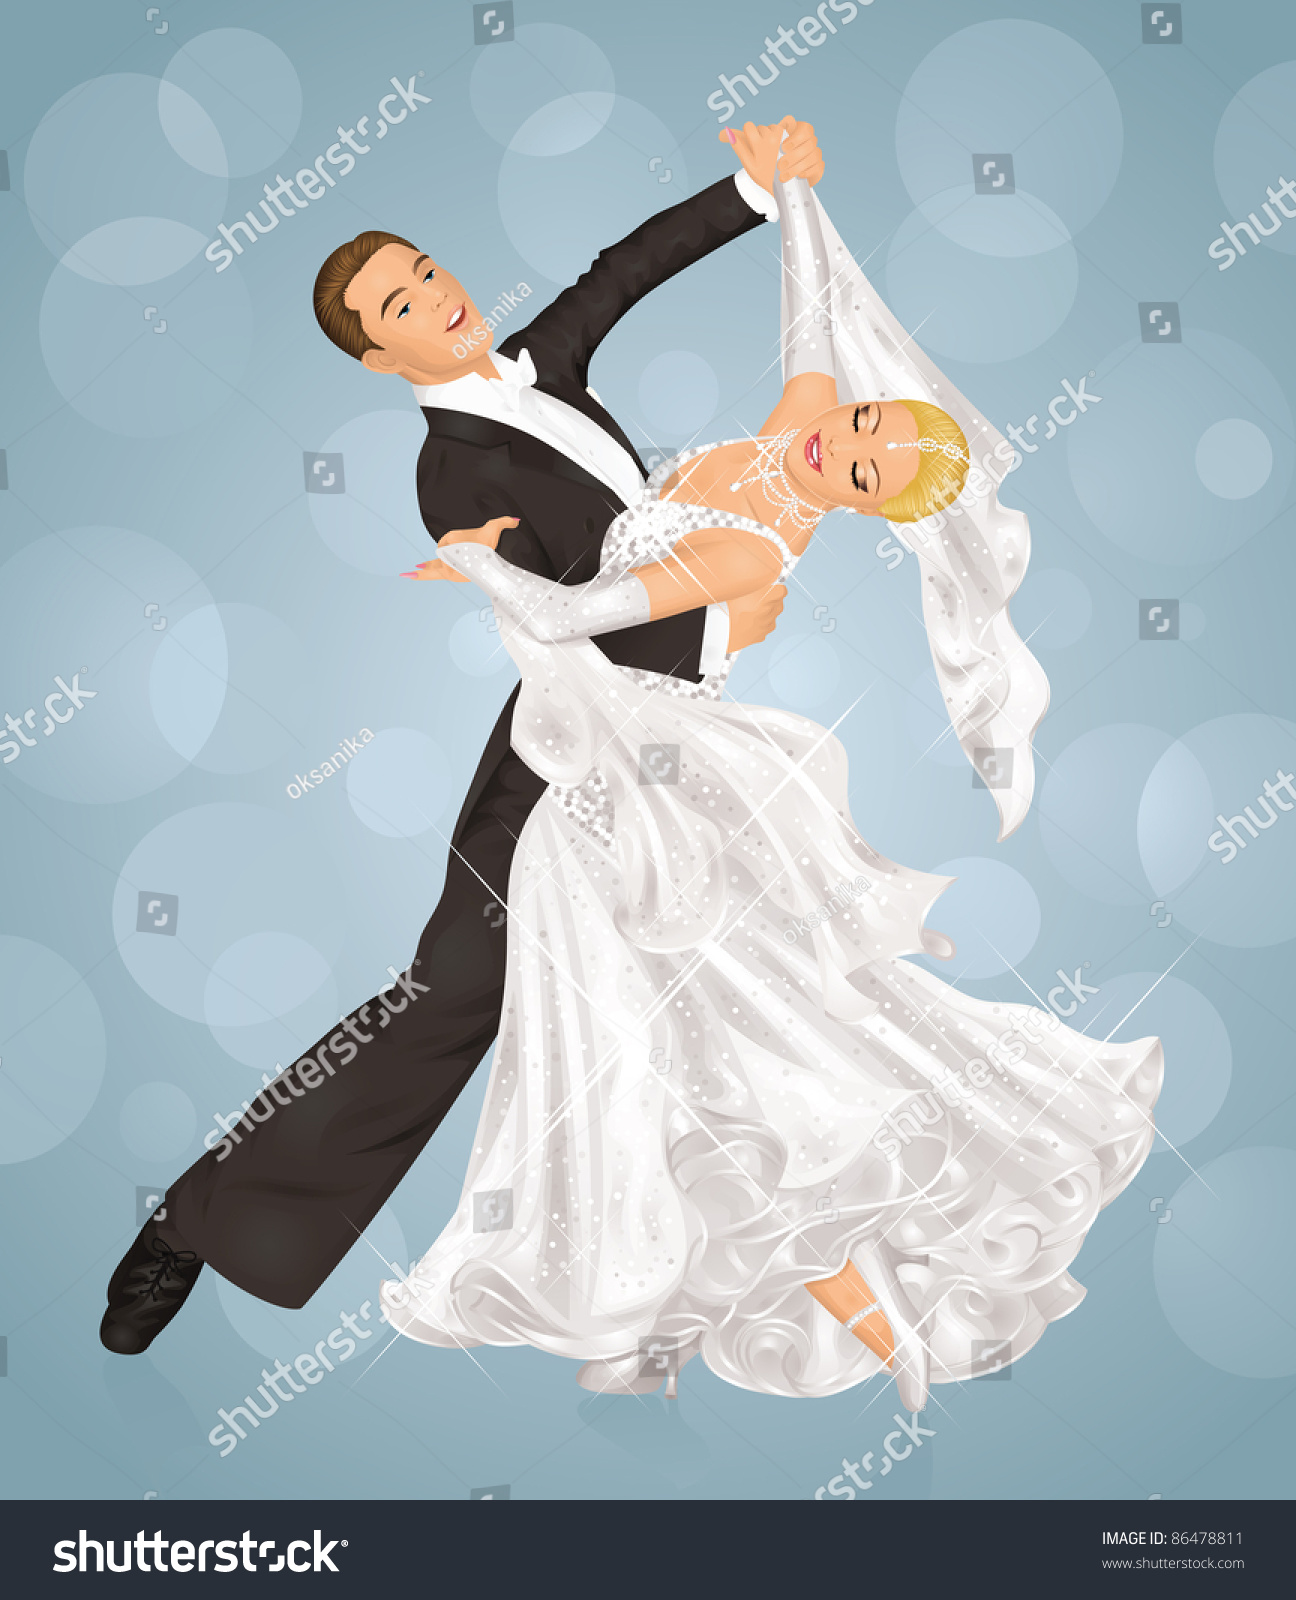 a research paper outline on ballroom dancing